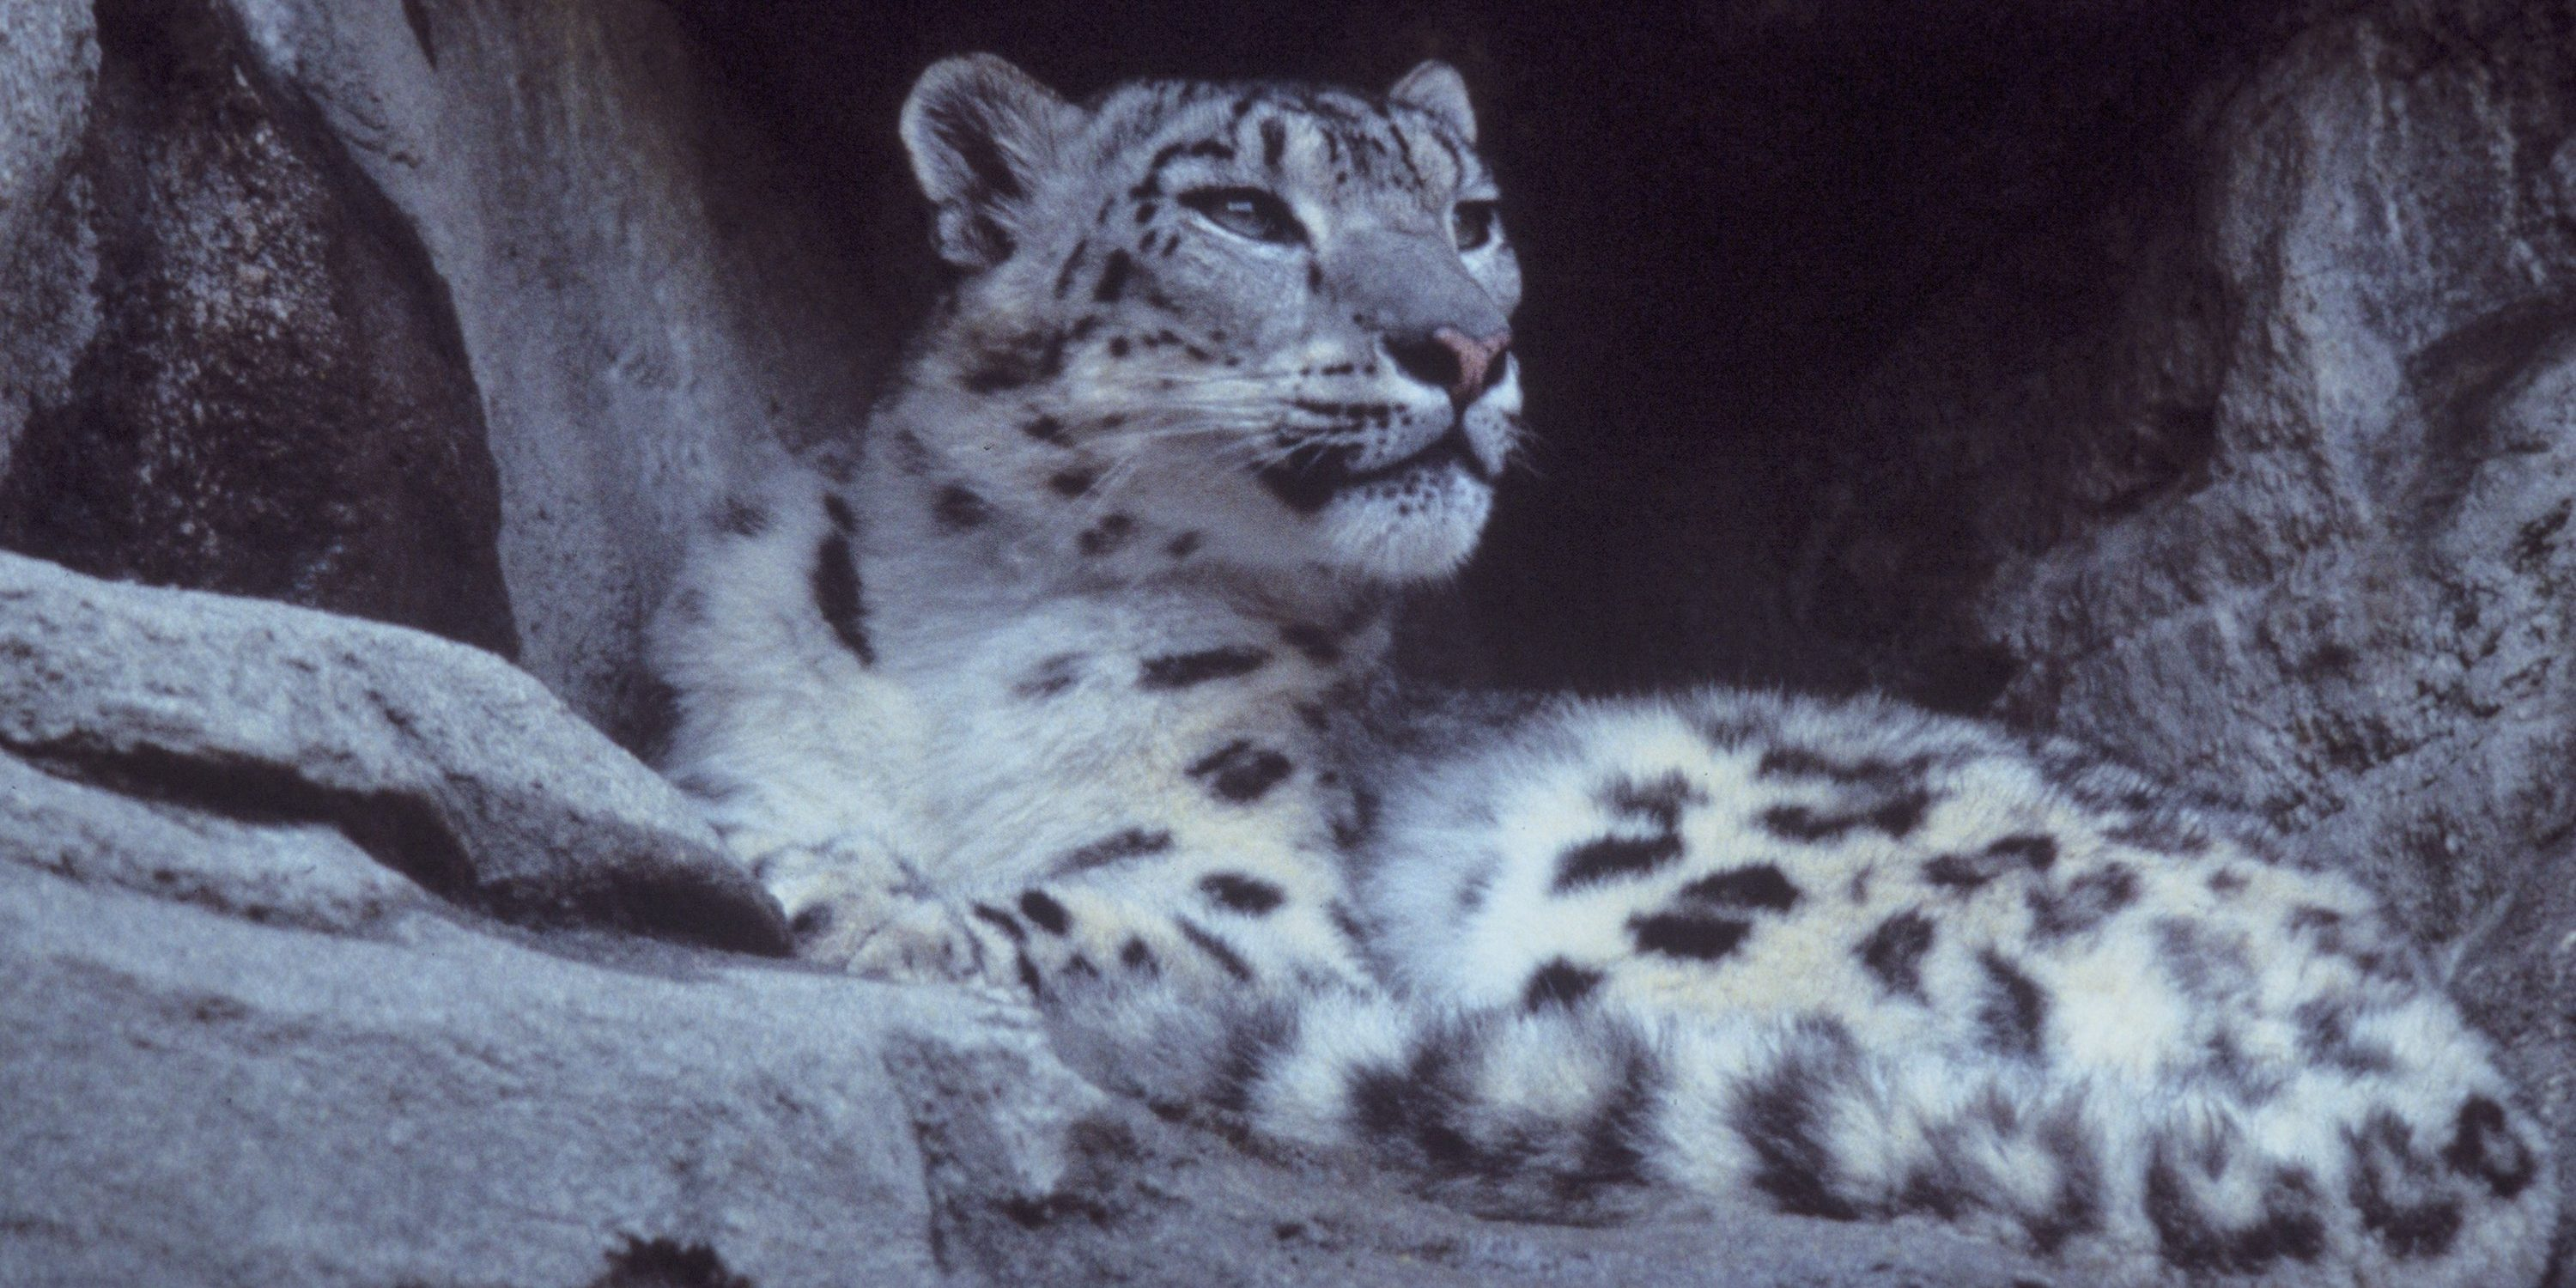 Snow Leopard in China has cataract removed